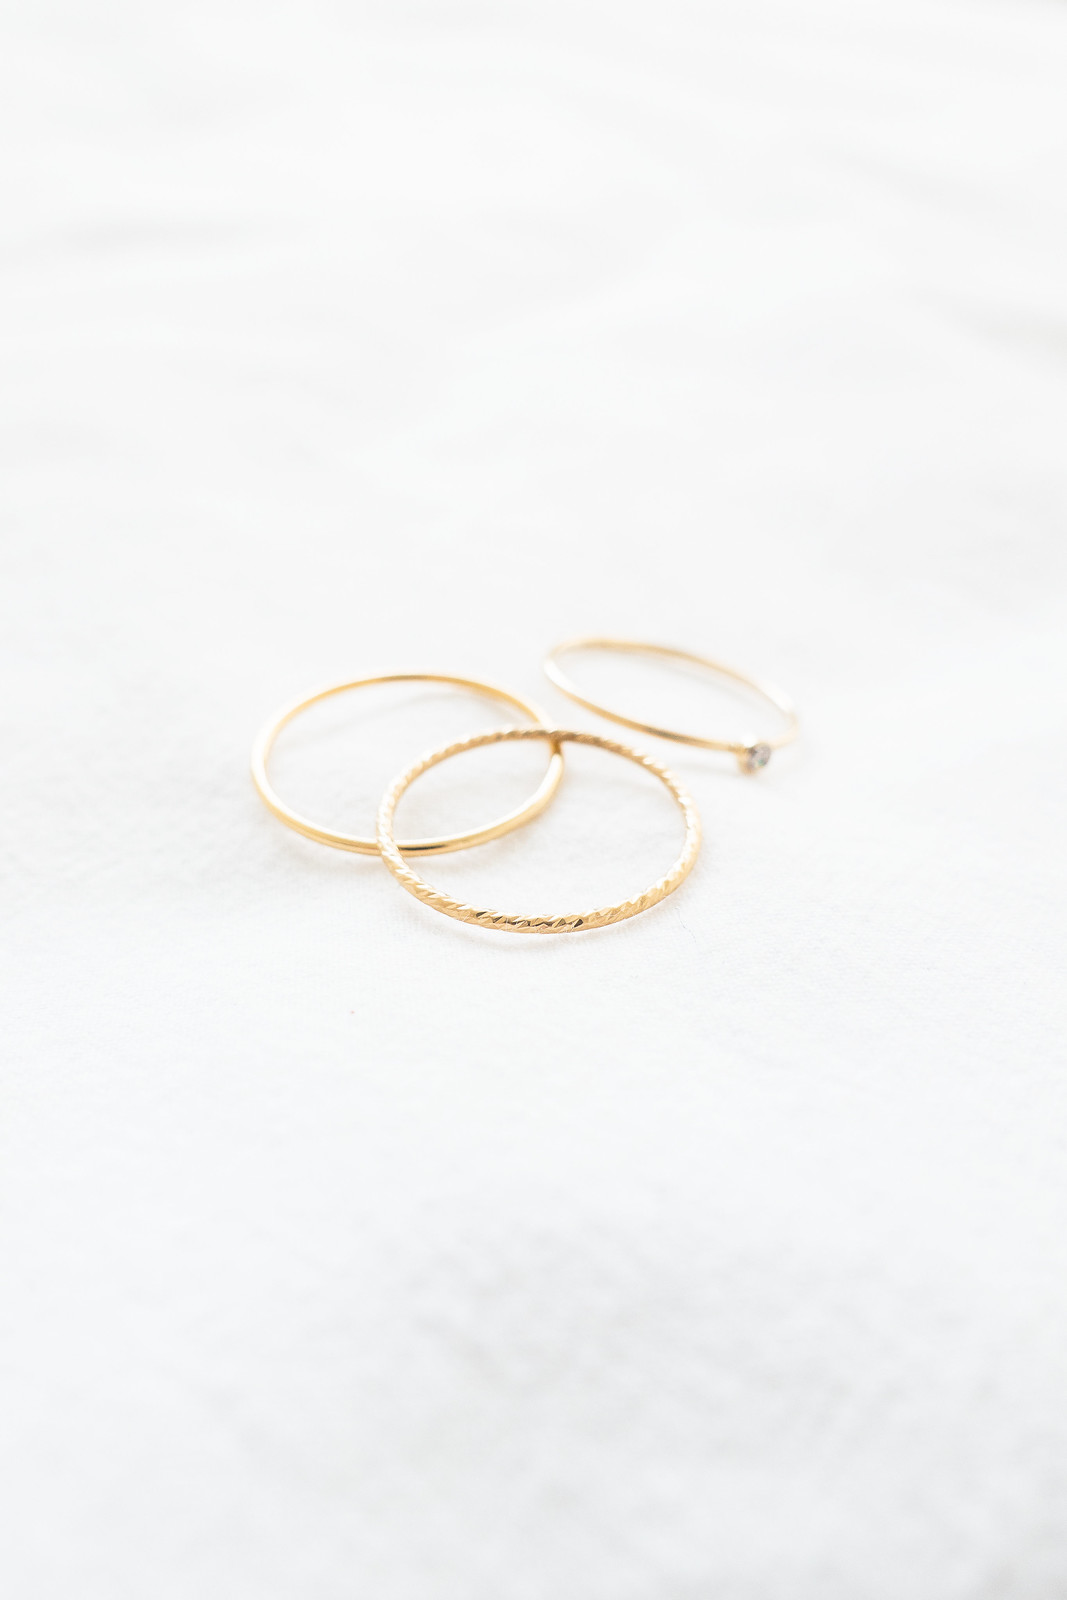 Most Wanted Minimal Rings